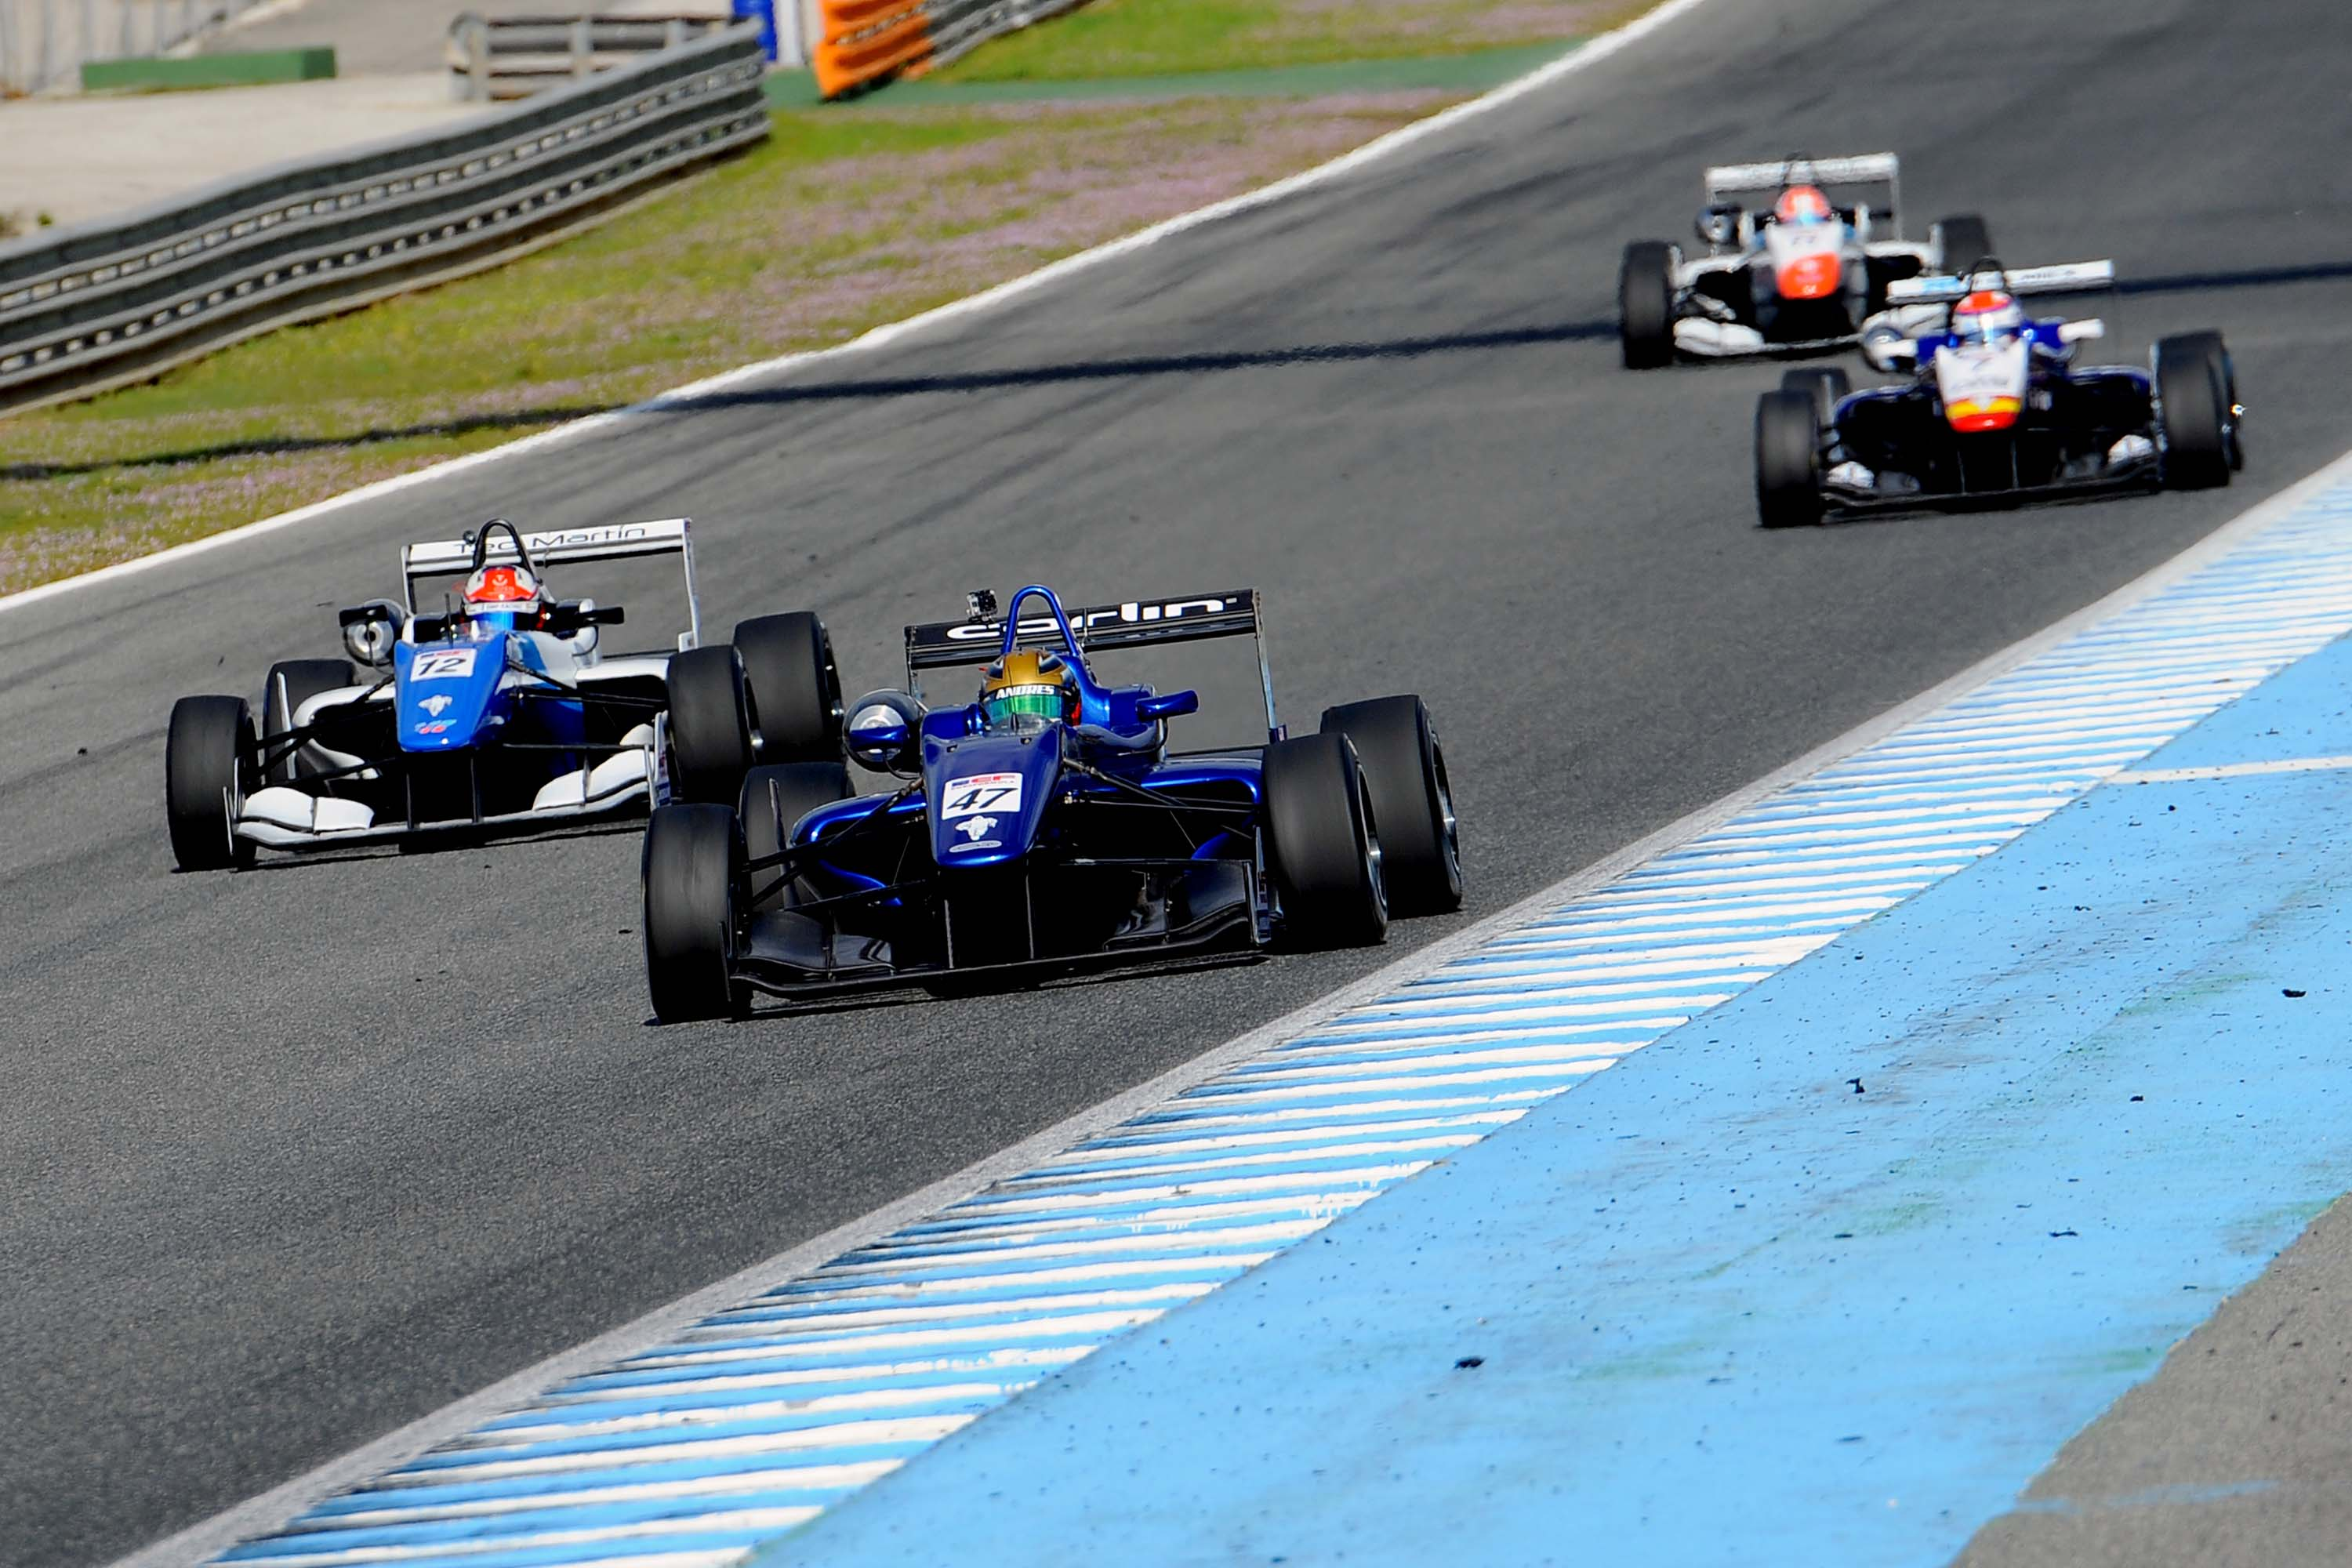 Circuito Paul Ricard : Winter series event at paul ricard promises new thrills